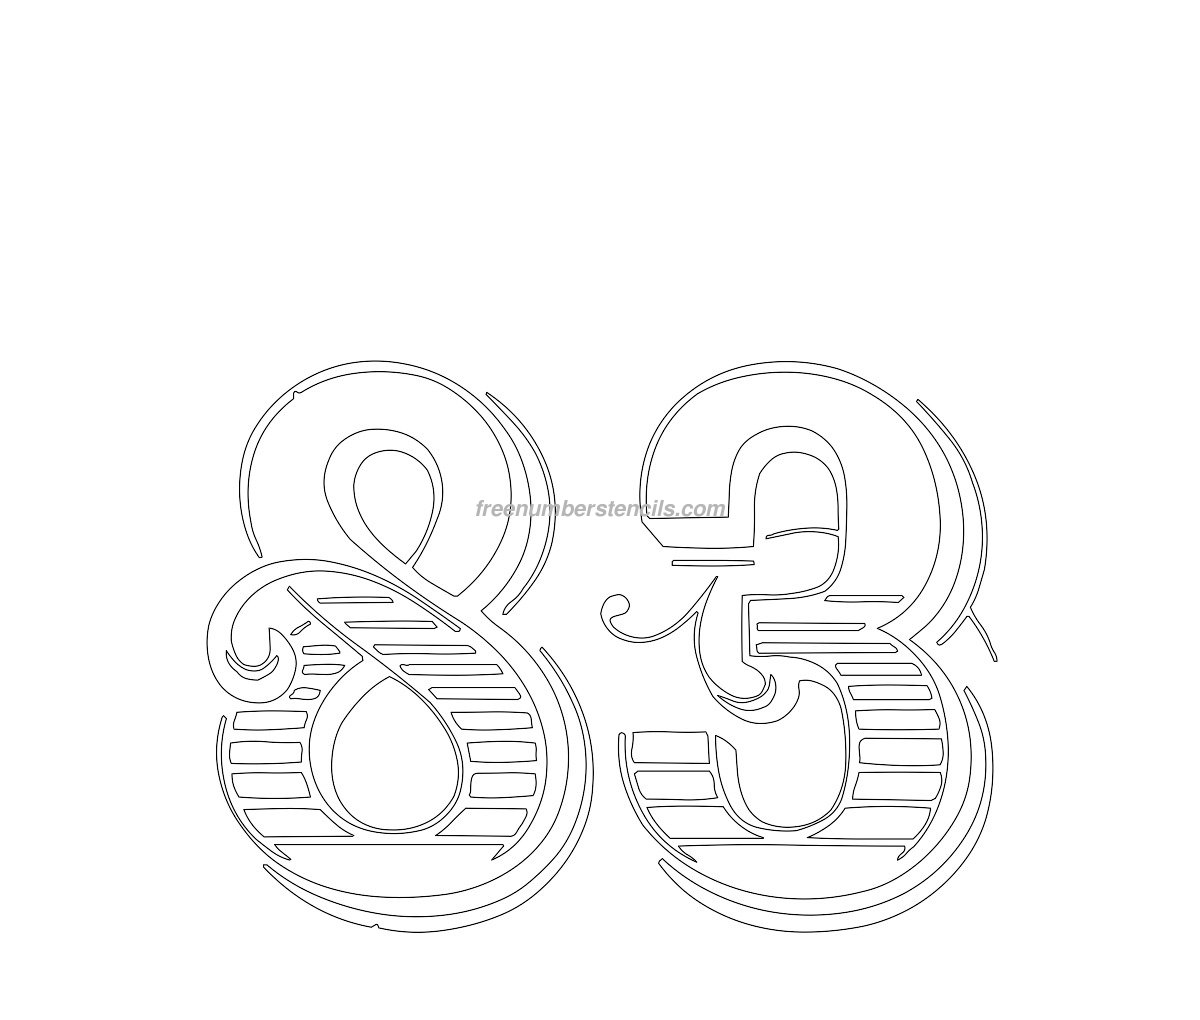 Download image decorative number stencils pc android iphone and ipad